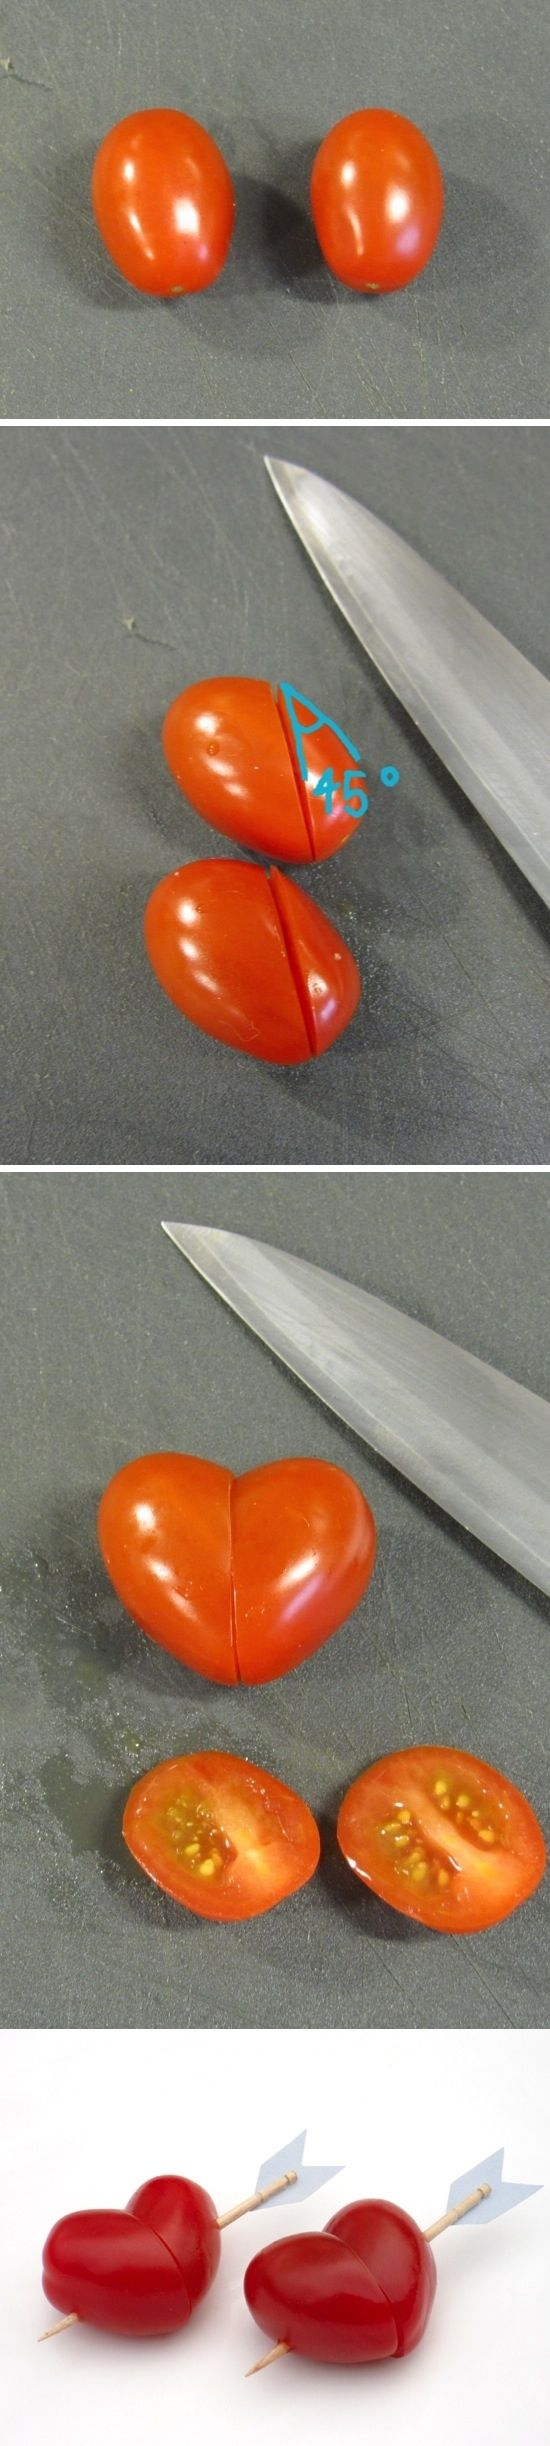 Heart-Shaped Grape Tomato Hearts | 41 Heart-Shaped DIYs To Actually Get You Excited For Valentine's Day